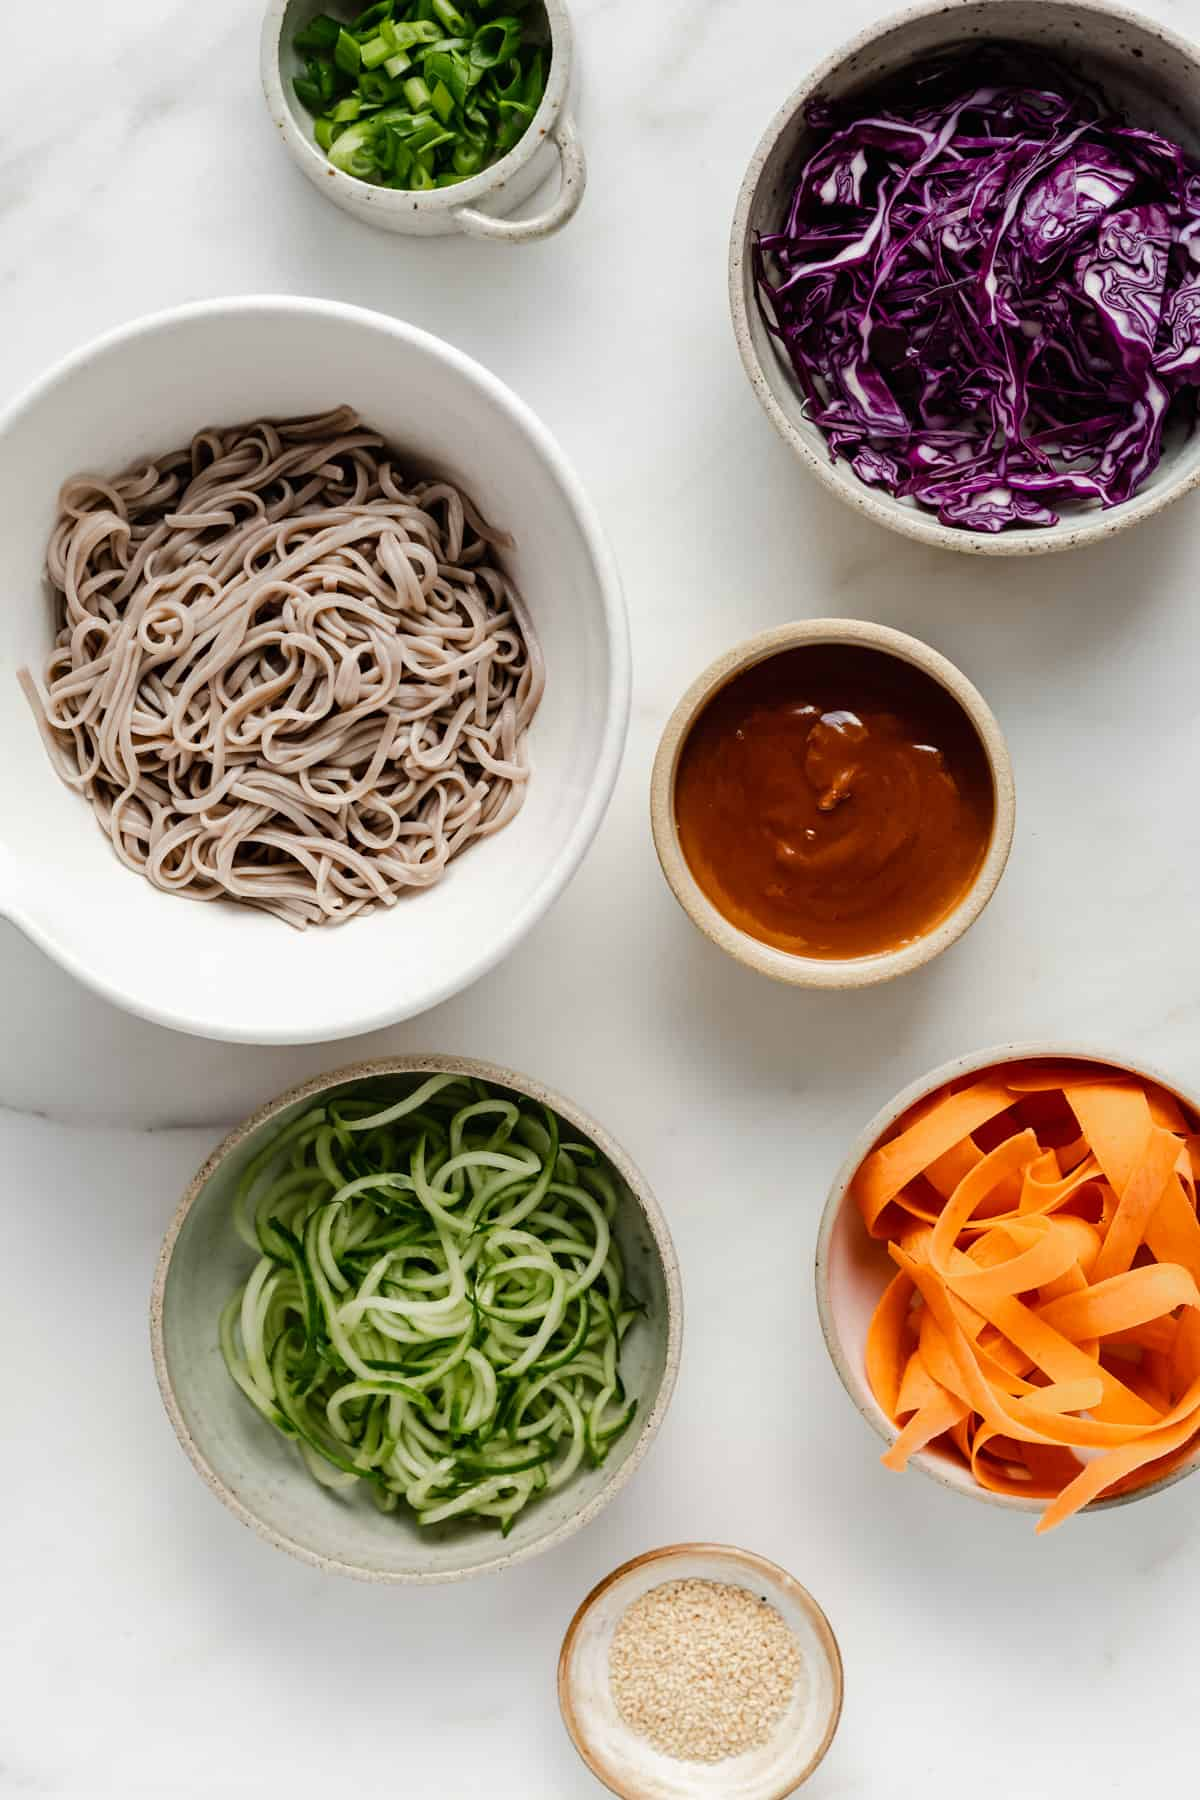 Bowls on a marble counter filled with soba noodles, shredded cabbage, spiralized cucumber, shredded carrots, chopped green onions, sesame seeds and peanut butter sauce